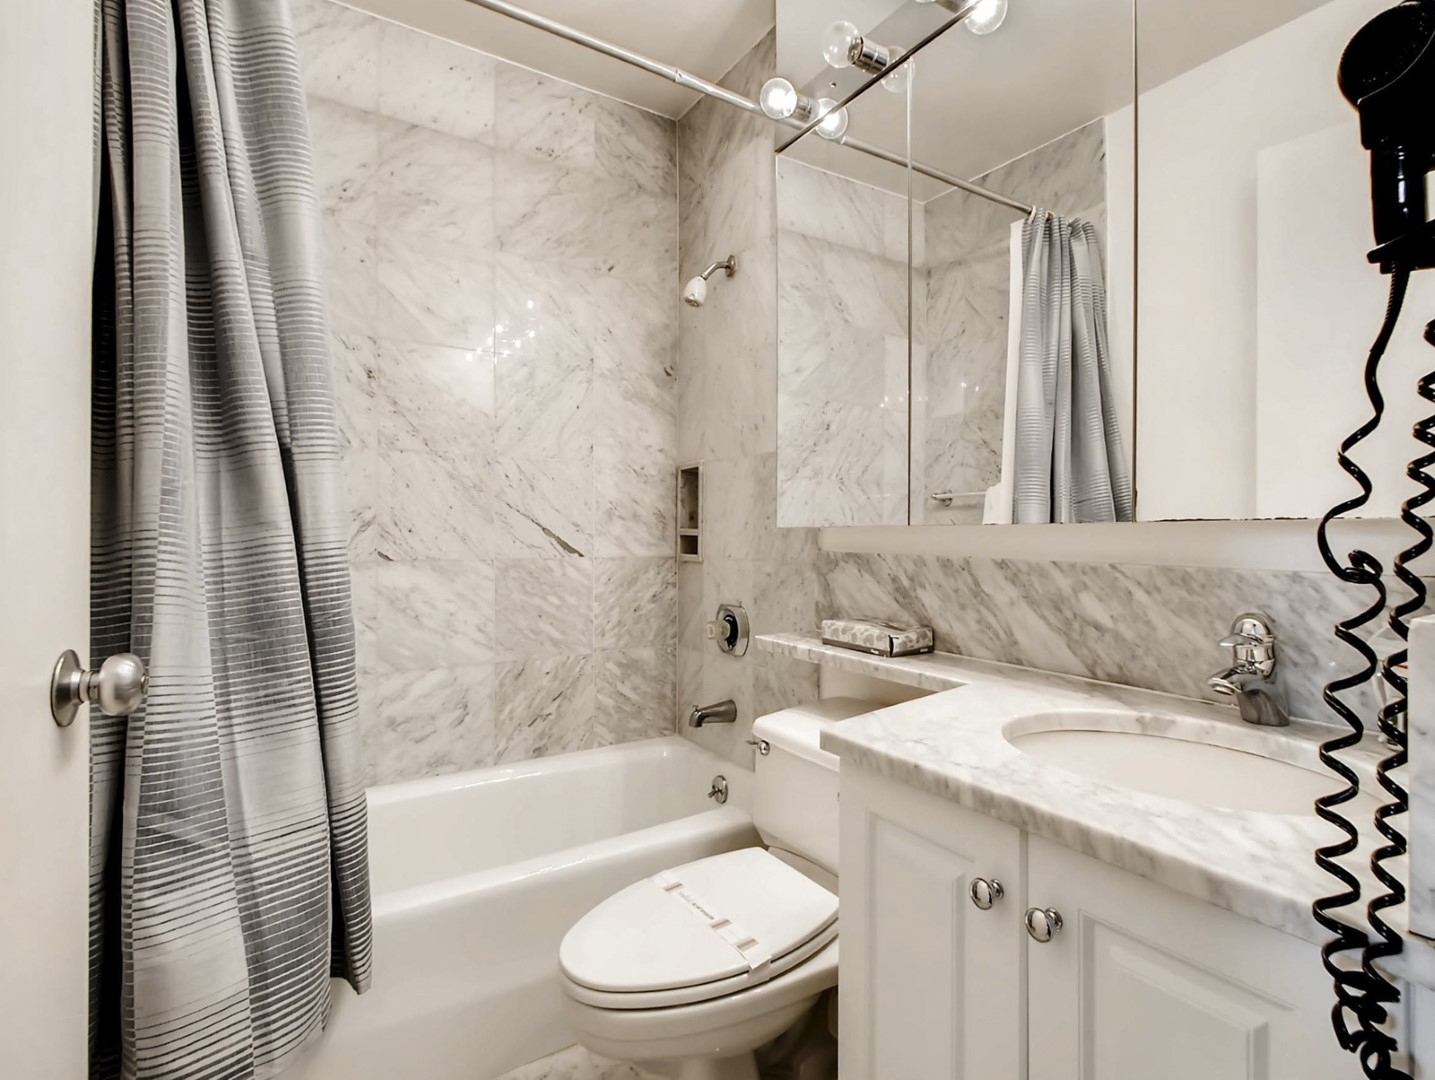 Bathroom at 56th Street Symphony House Apartments, Midtown West, New York